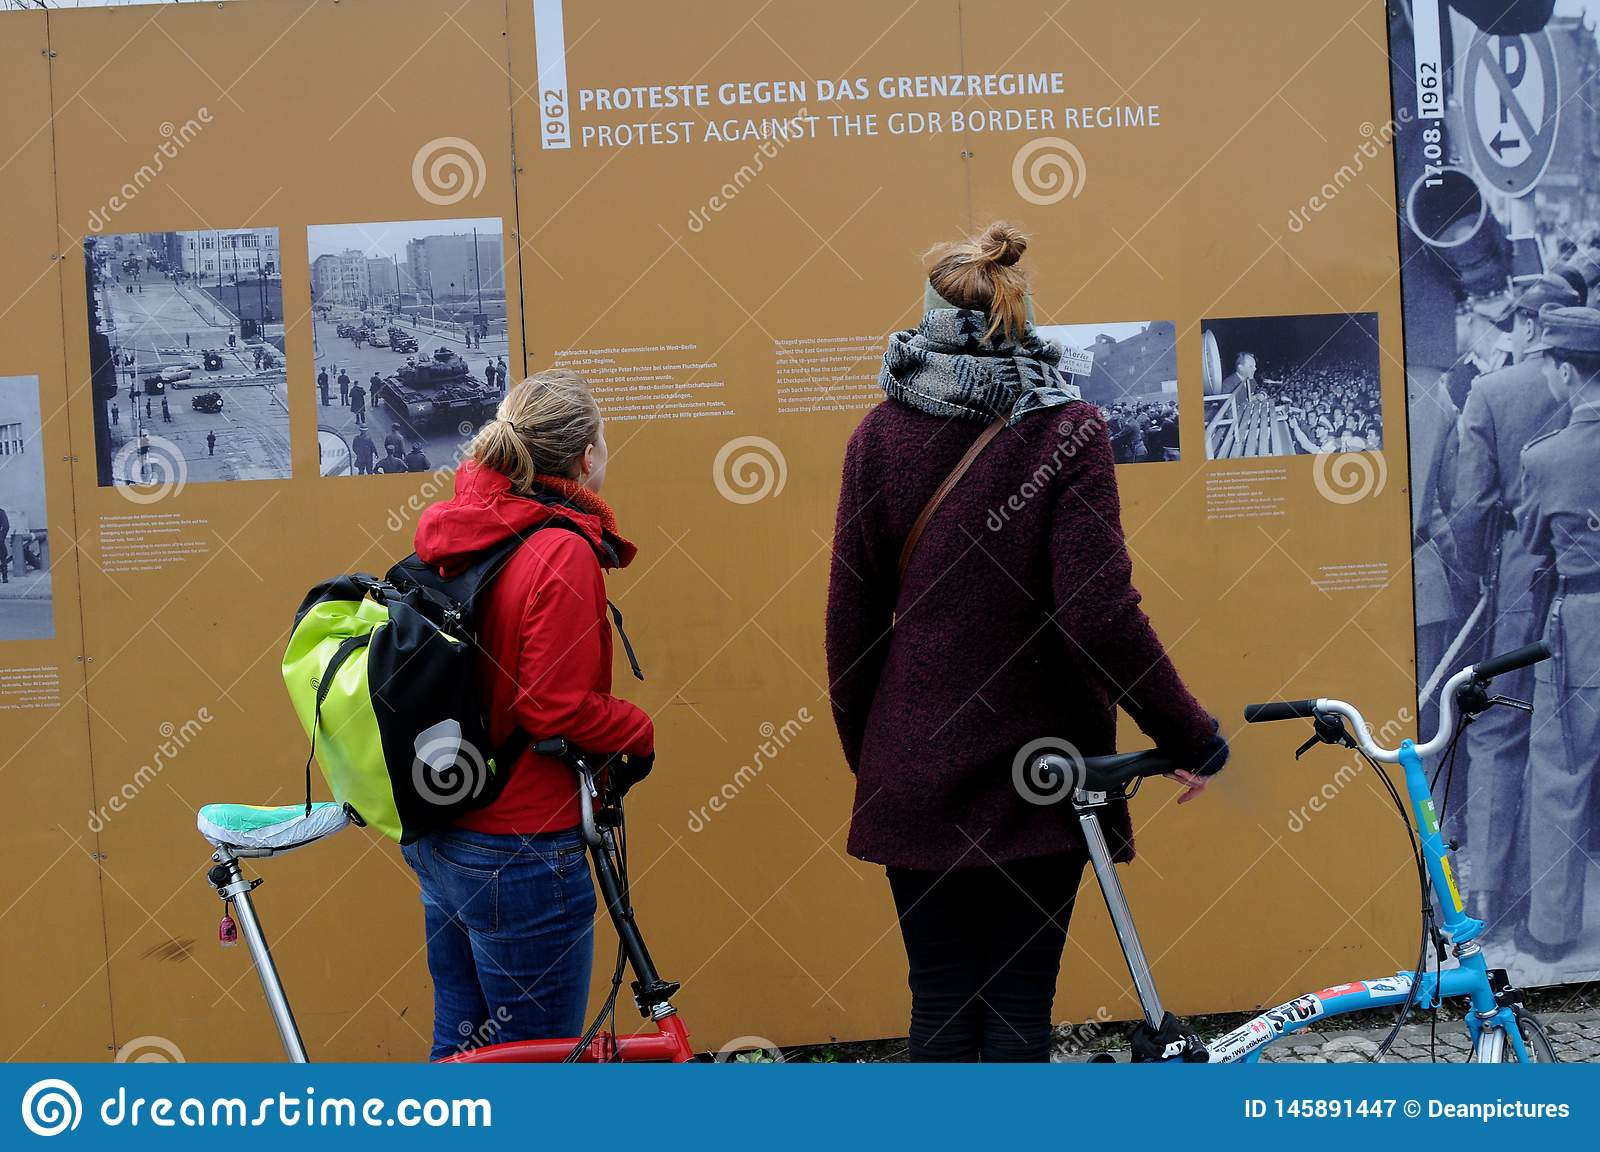 VISITORS AND LIFE AT CHECK POINT CHARLIES BERLIN. Check point charlie/berlain/ 05.March 2019. _Images are from Check point charlie, berlin 1989-2019 this Berlin royalty free stock photography